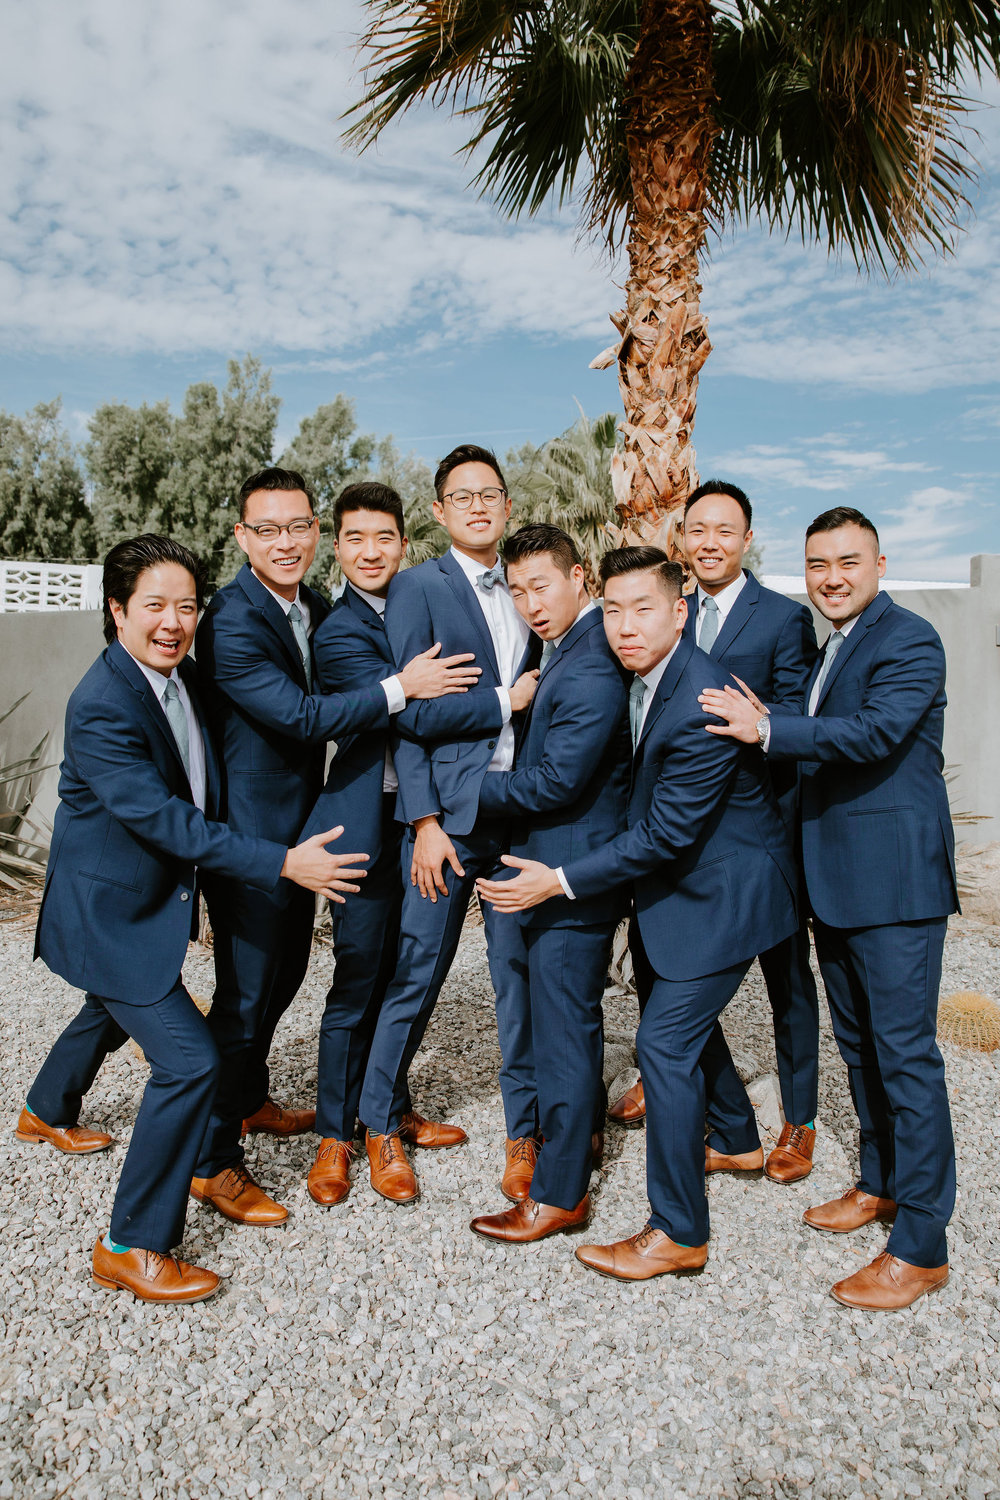 Palm Springs Lautner Compound Wedding May Iosotaluno Photography 120.jpg